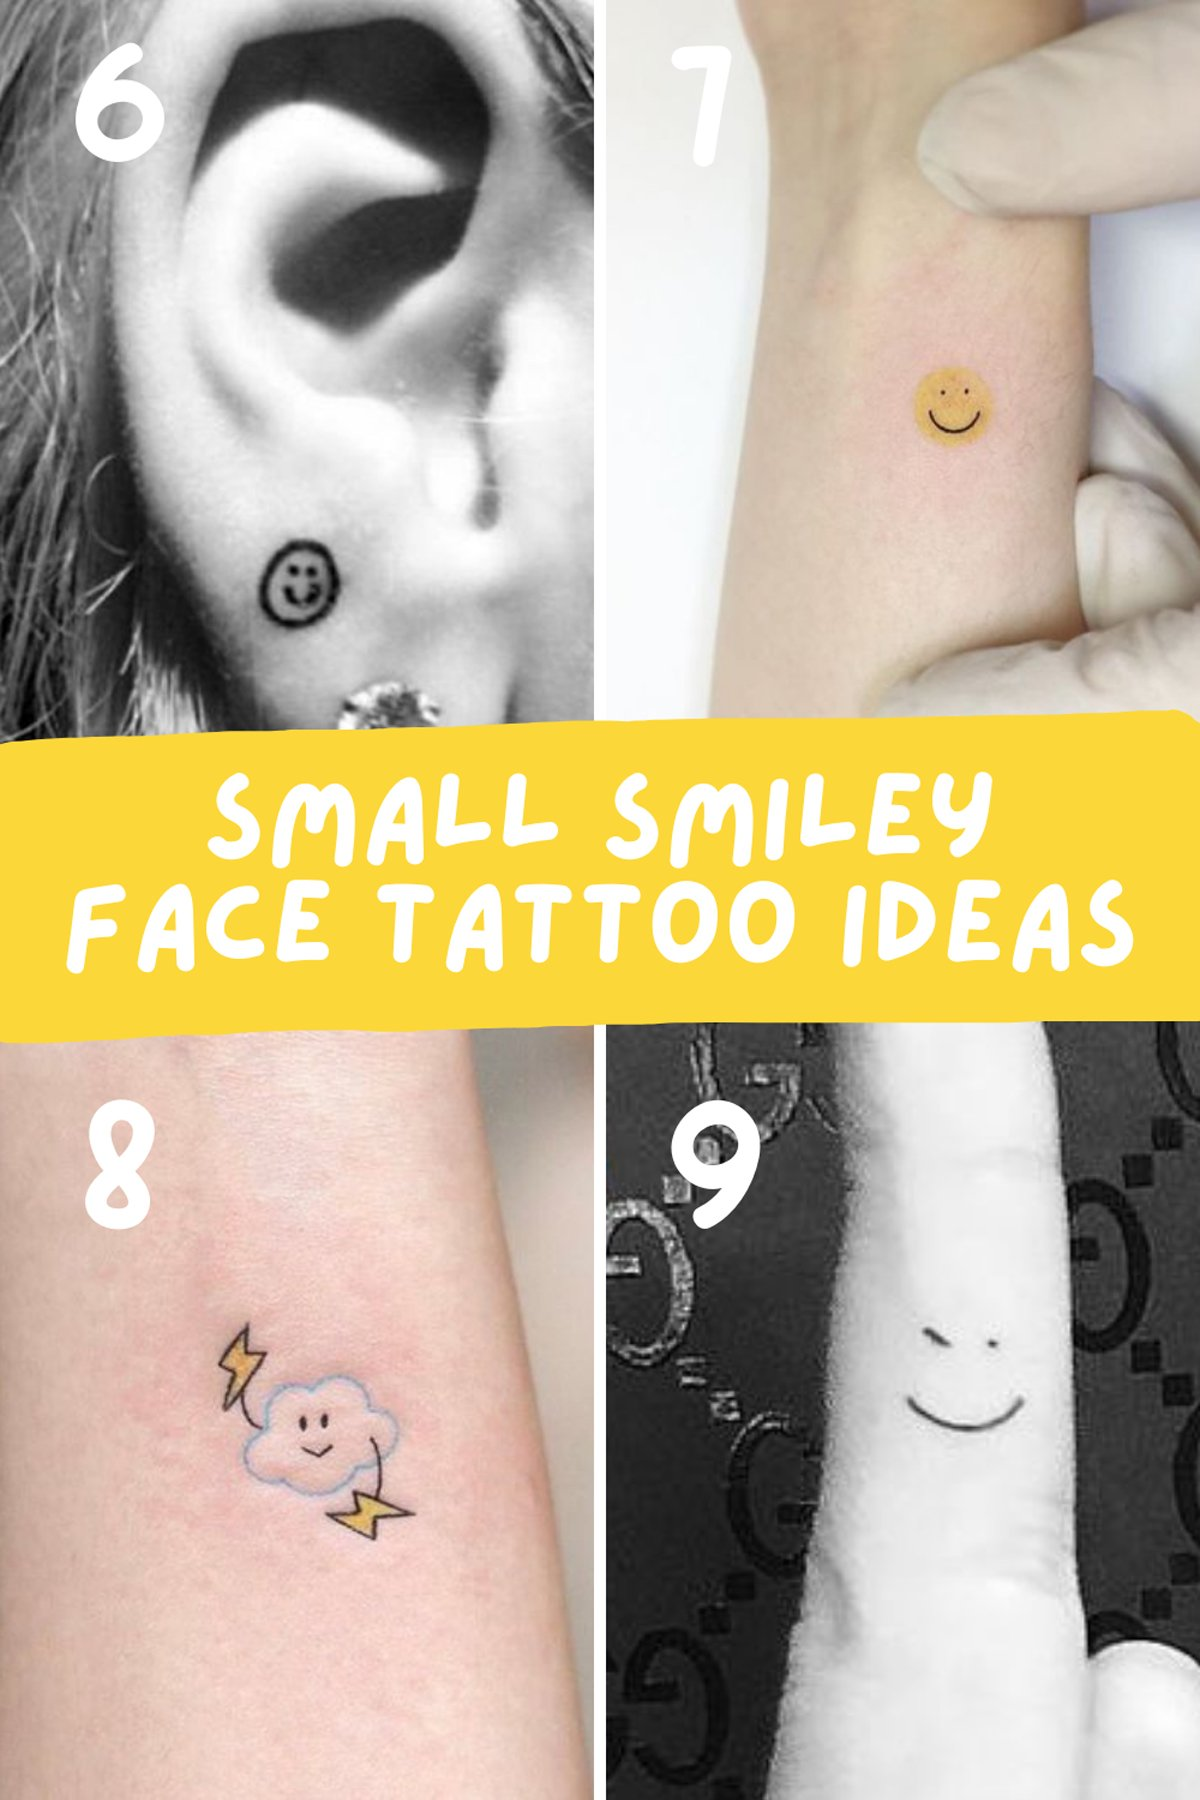 Little Tattoo Designs of smiles